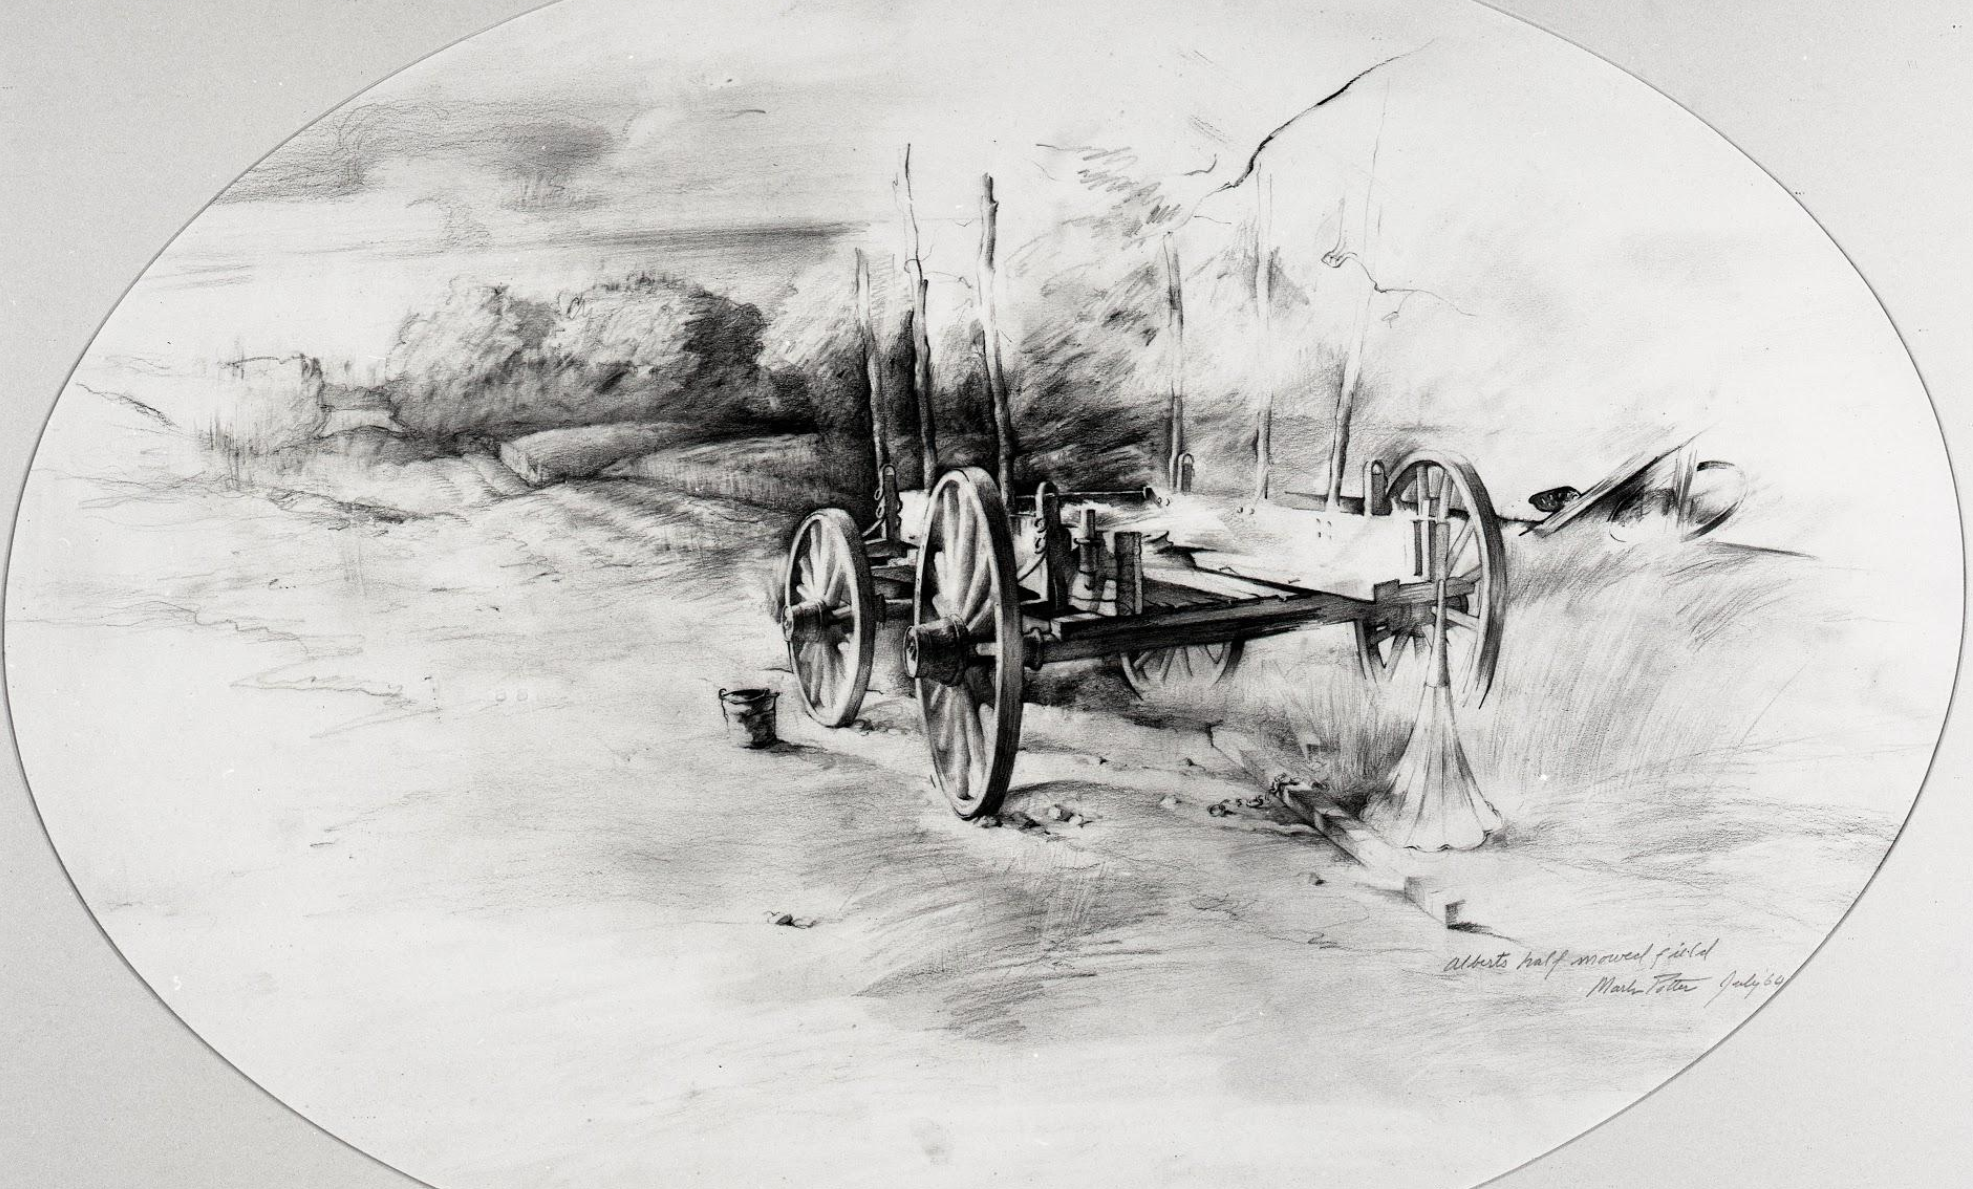 Albert's Half-Mowed Field.    1960, pencil on paper. 18 x 25.5 inches. Collection of The Taft School.   The farm across the river from our old house was owned by a Lithuanian...still farming in the late 20th century. He spoke no English, nor did his adult son who couldn't drive a car... The father passed away and one day the son's sister came running over to call the police because her brother was attacking their mother. The police arrived after the crisis passed to find the son mowing the fields. As officers approached him to discuss the attack he chased them around the field trying to hit them with the mowing blade. Finally he was arrested and taken off. The tractor was left in the field which remained half mown.